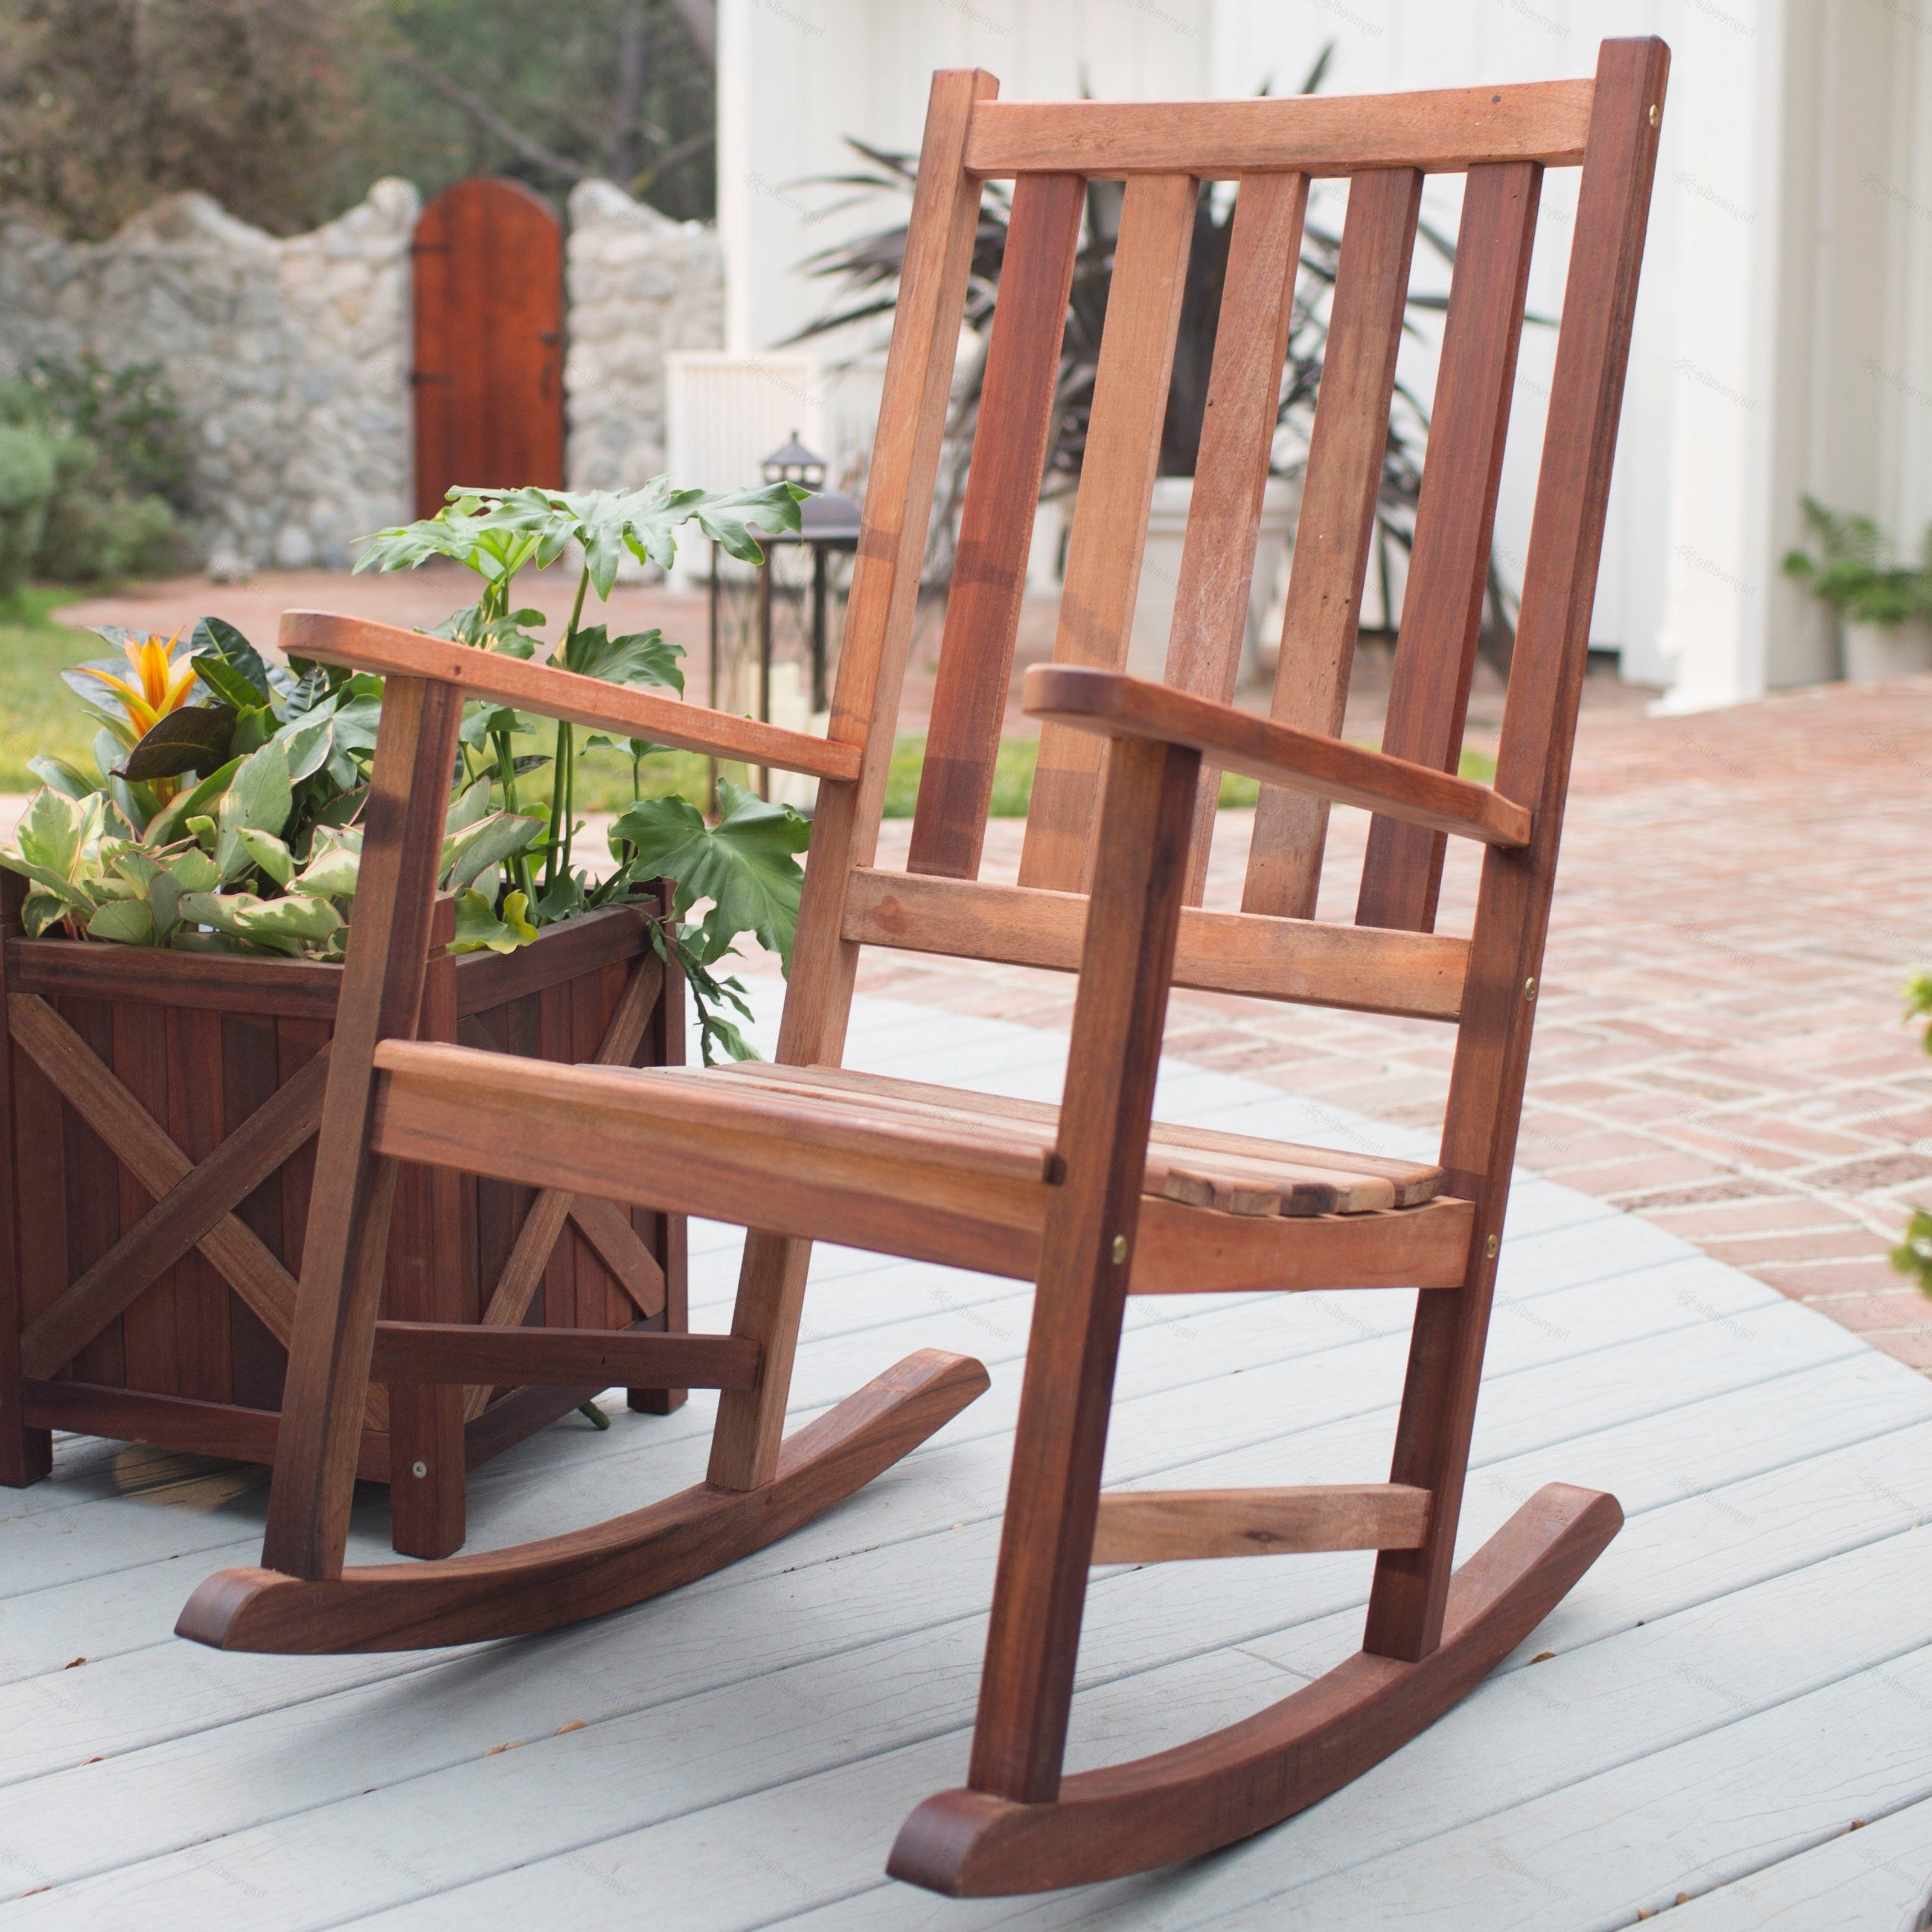 2018 Belham Living Richmond Heavy Duty Outdoor Wooden Rocking Chair Throughout Rocking Chairs For Outdoors (View 3 of 15)